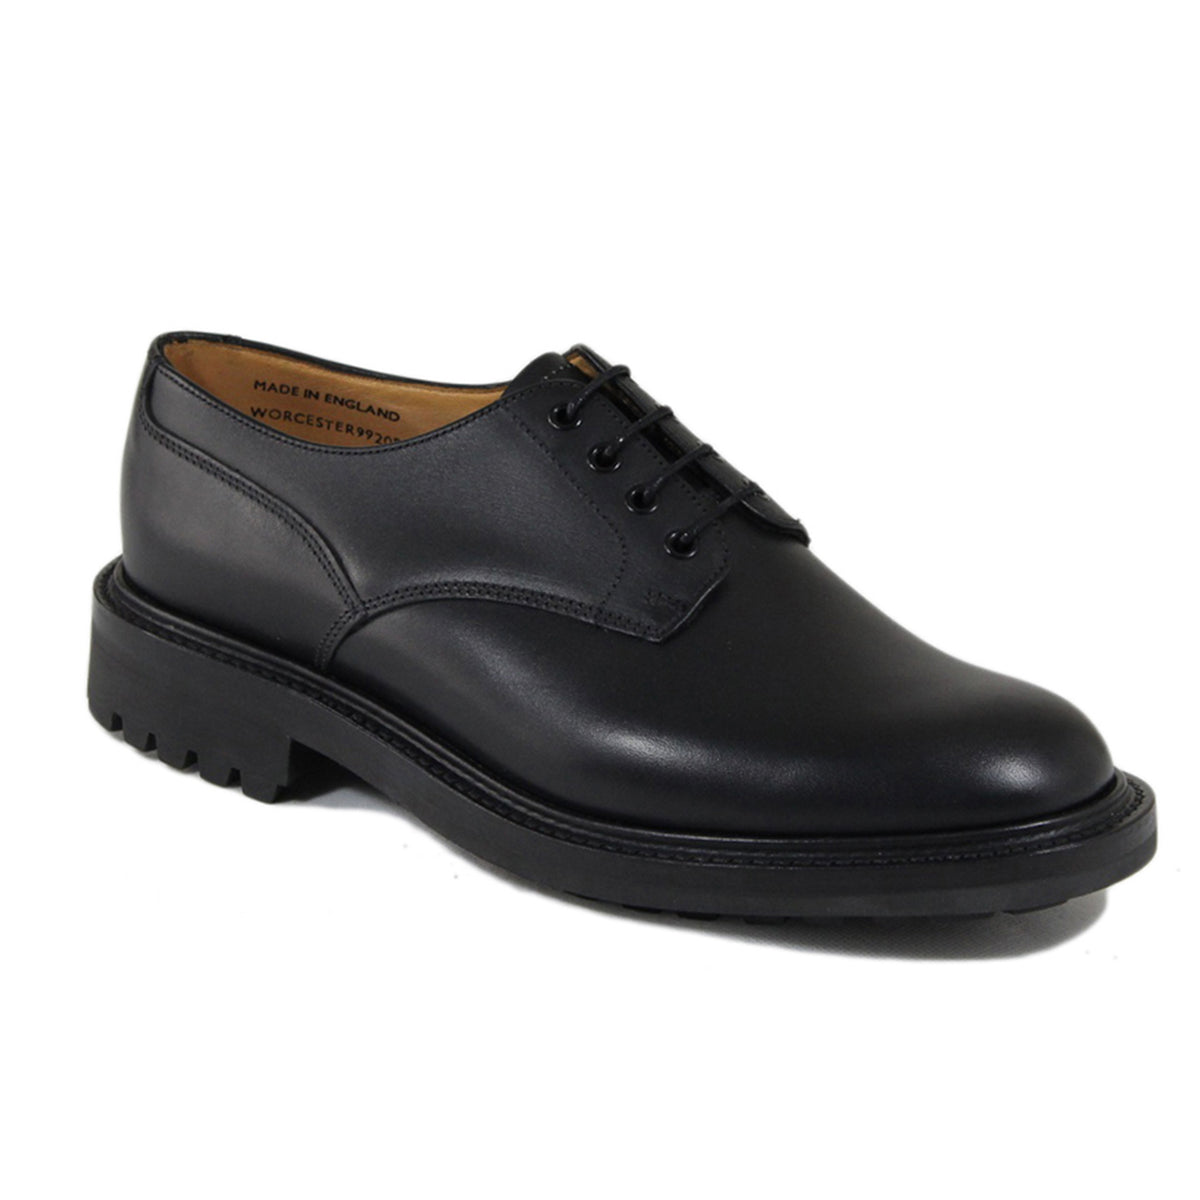 Sanders Worcester Gibson Derby Shoe Leather Footwear in Black Angle